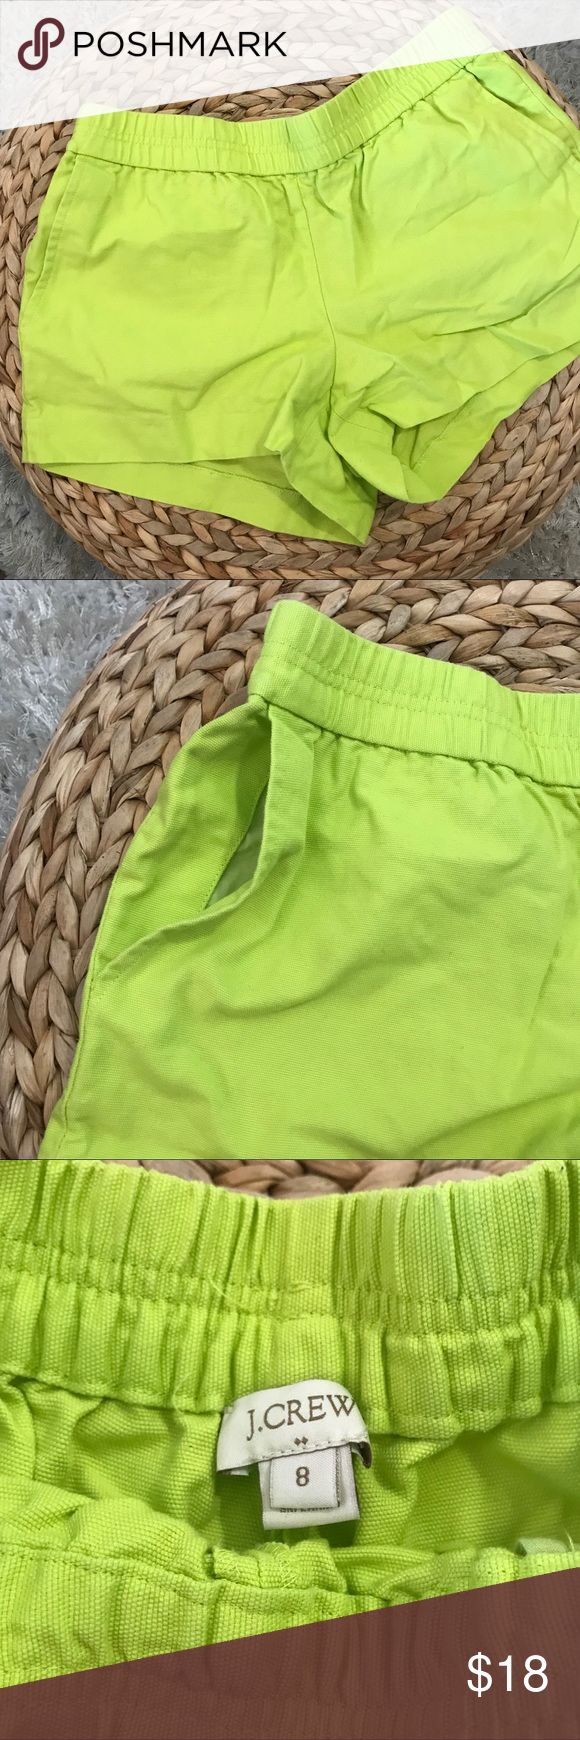 J Crew neon green shorts with pockets Great used condition, see pics for details J. Crew Shorts